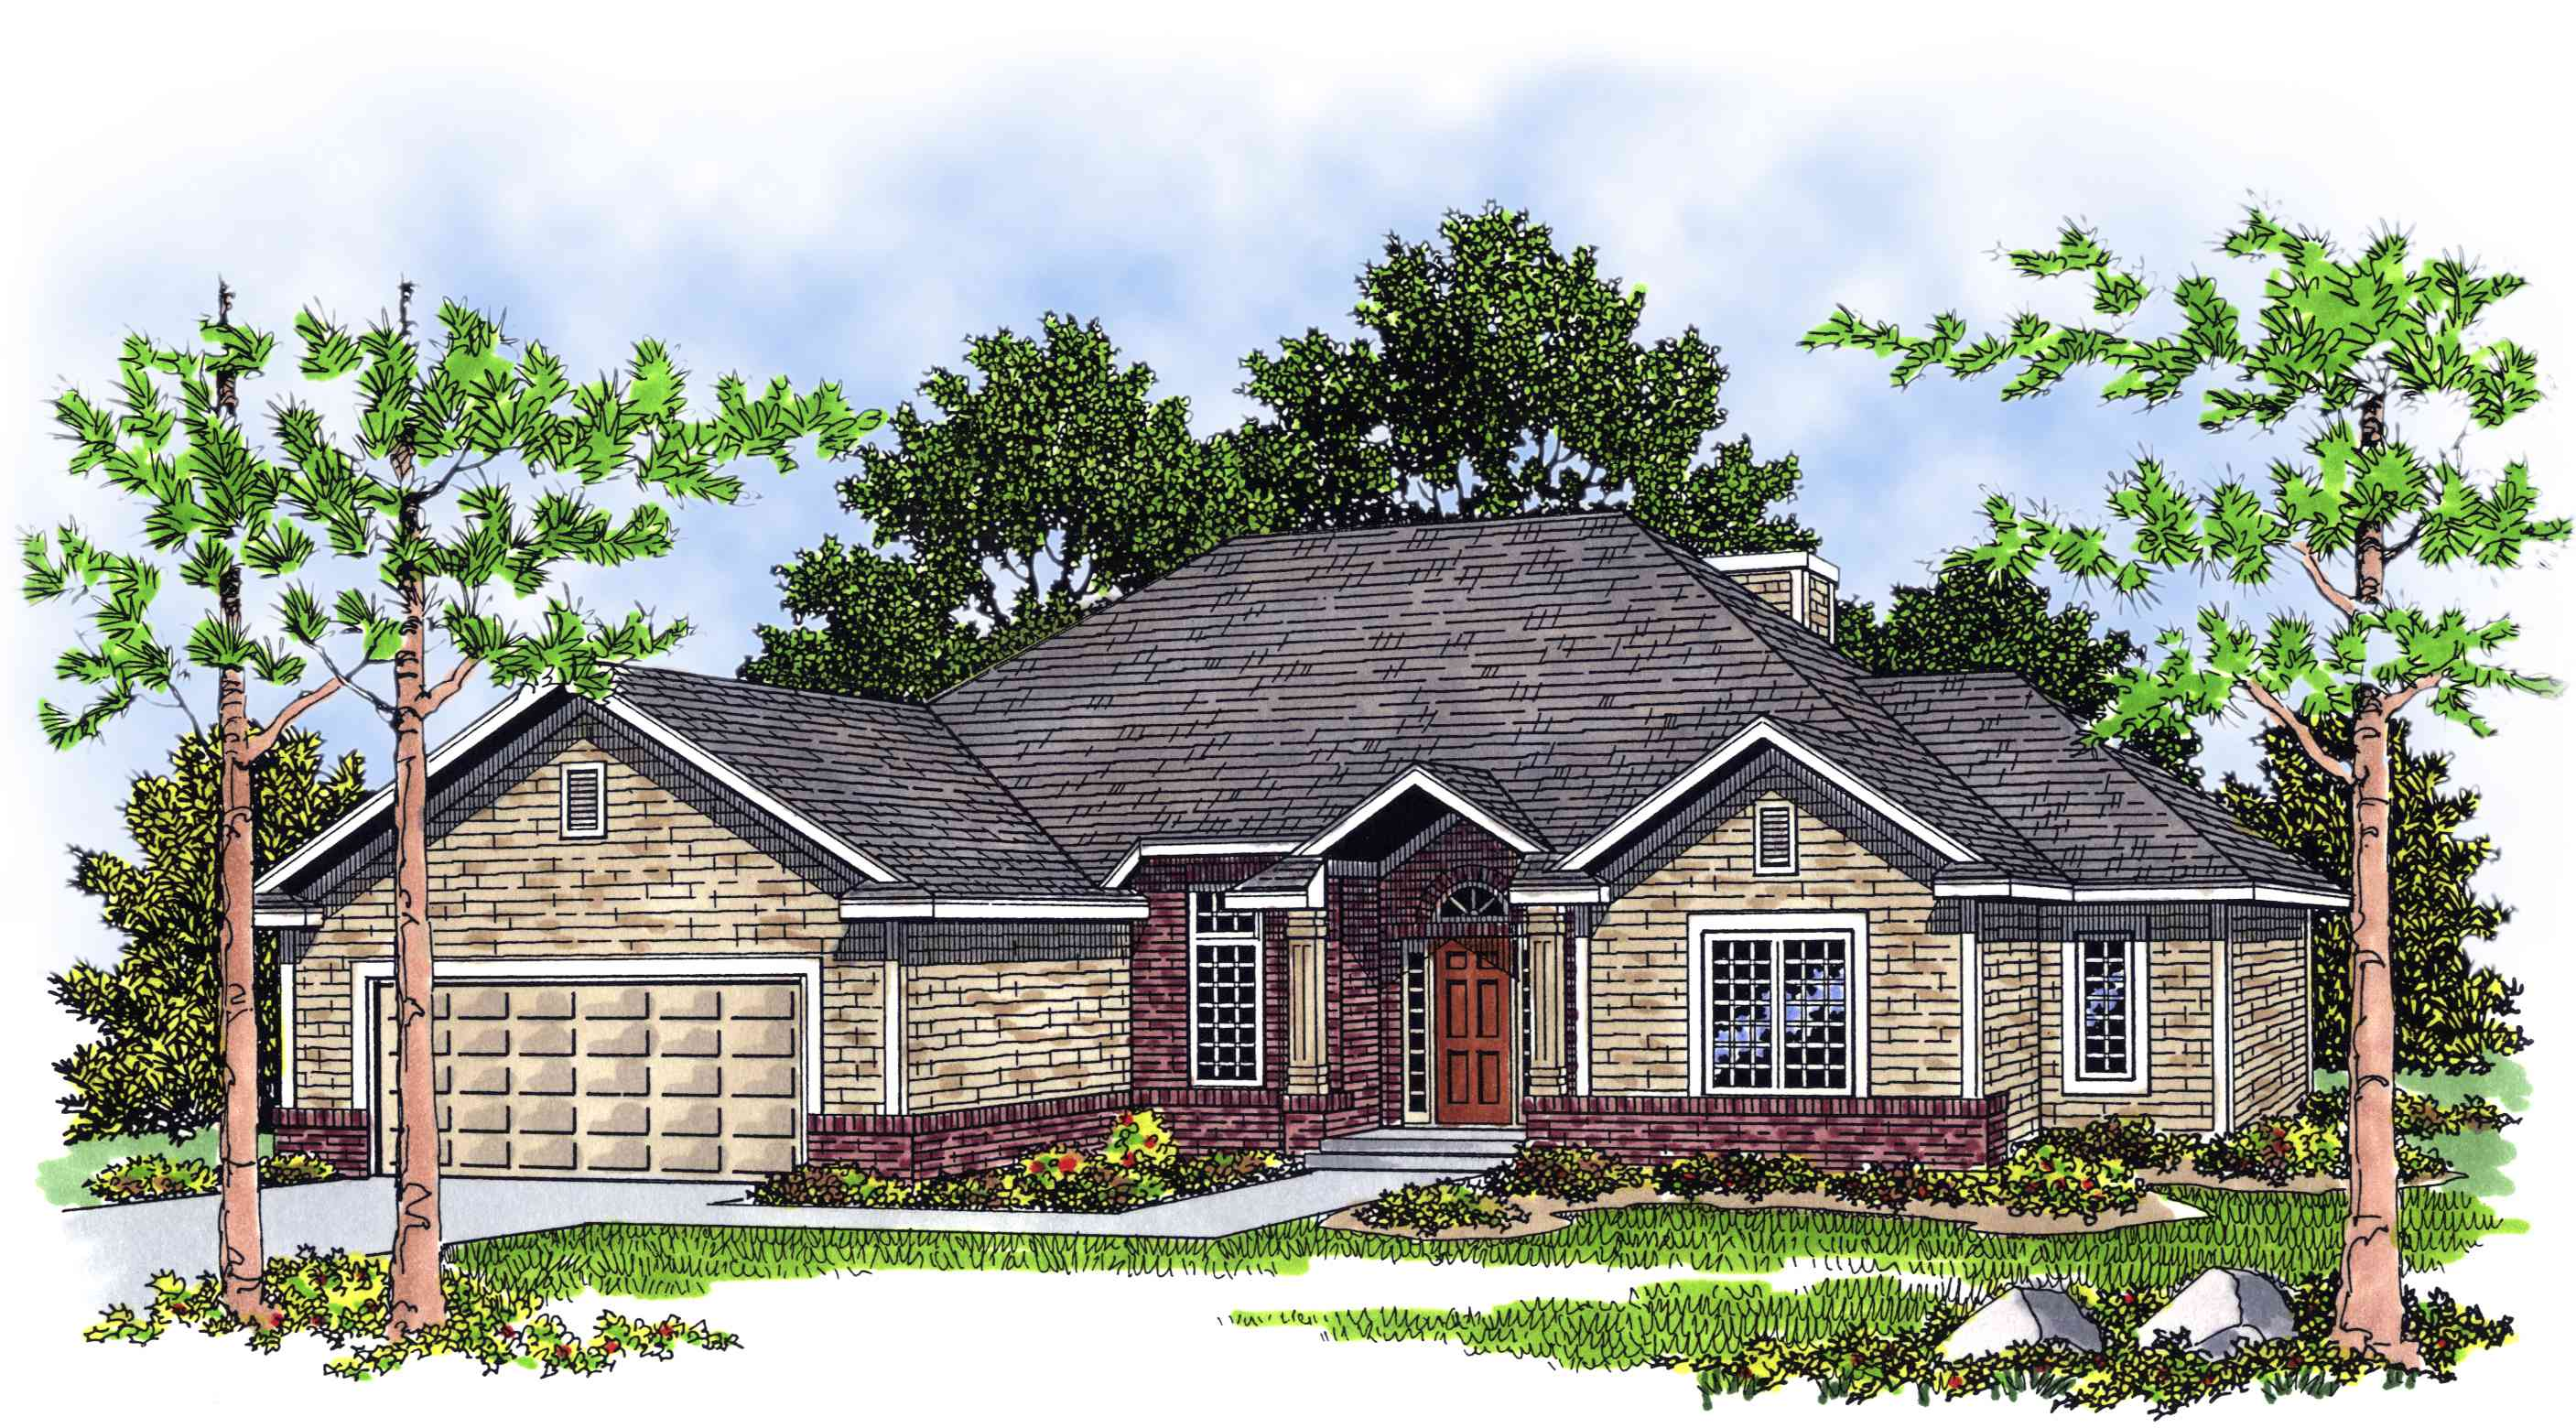 Charming traditional ranch home plan 8949ah 1st floor for Traditional ranch house